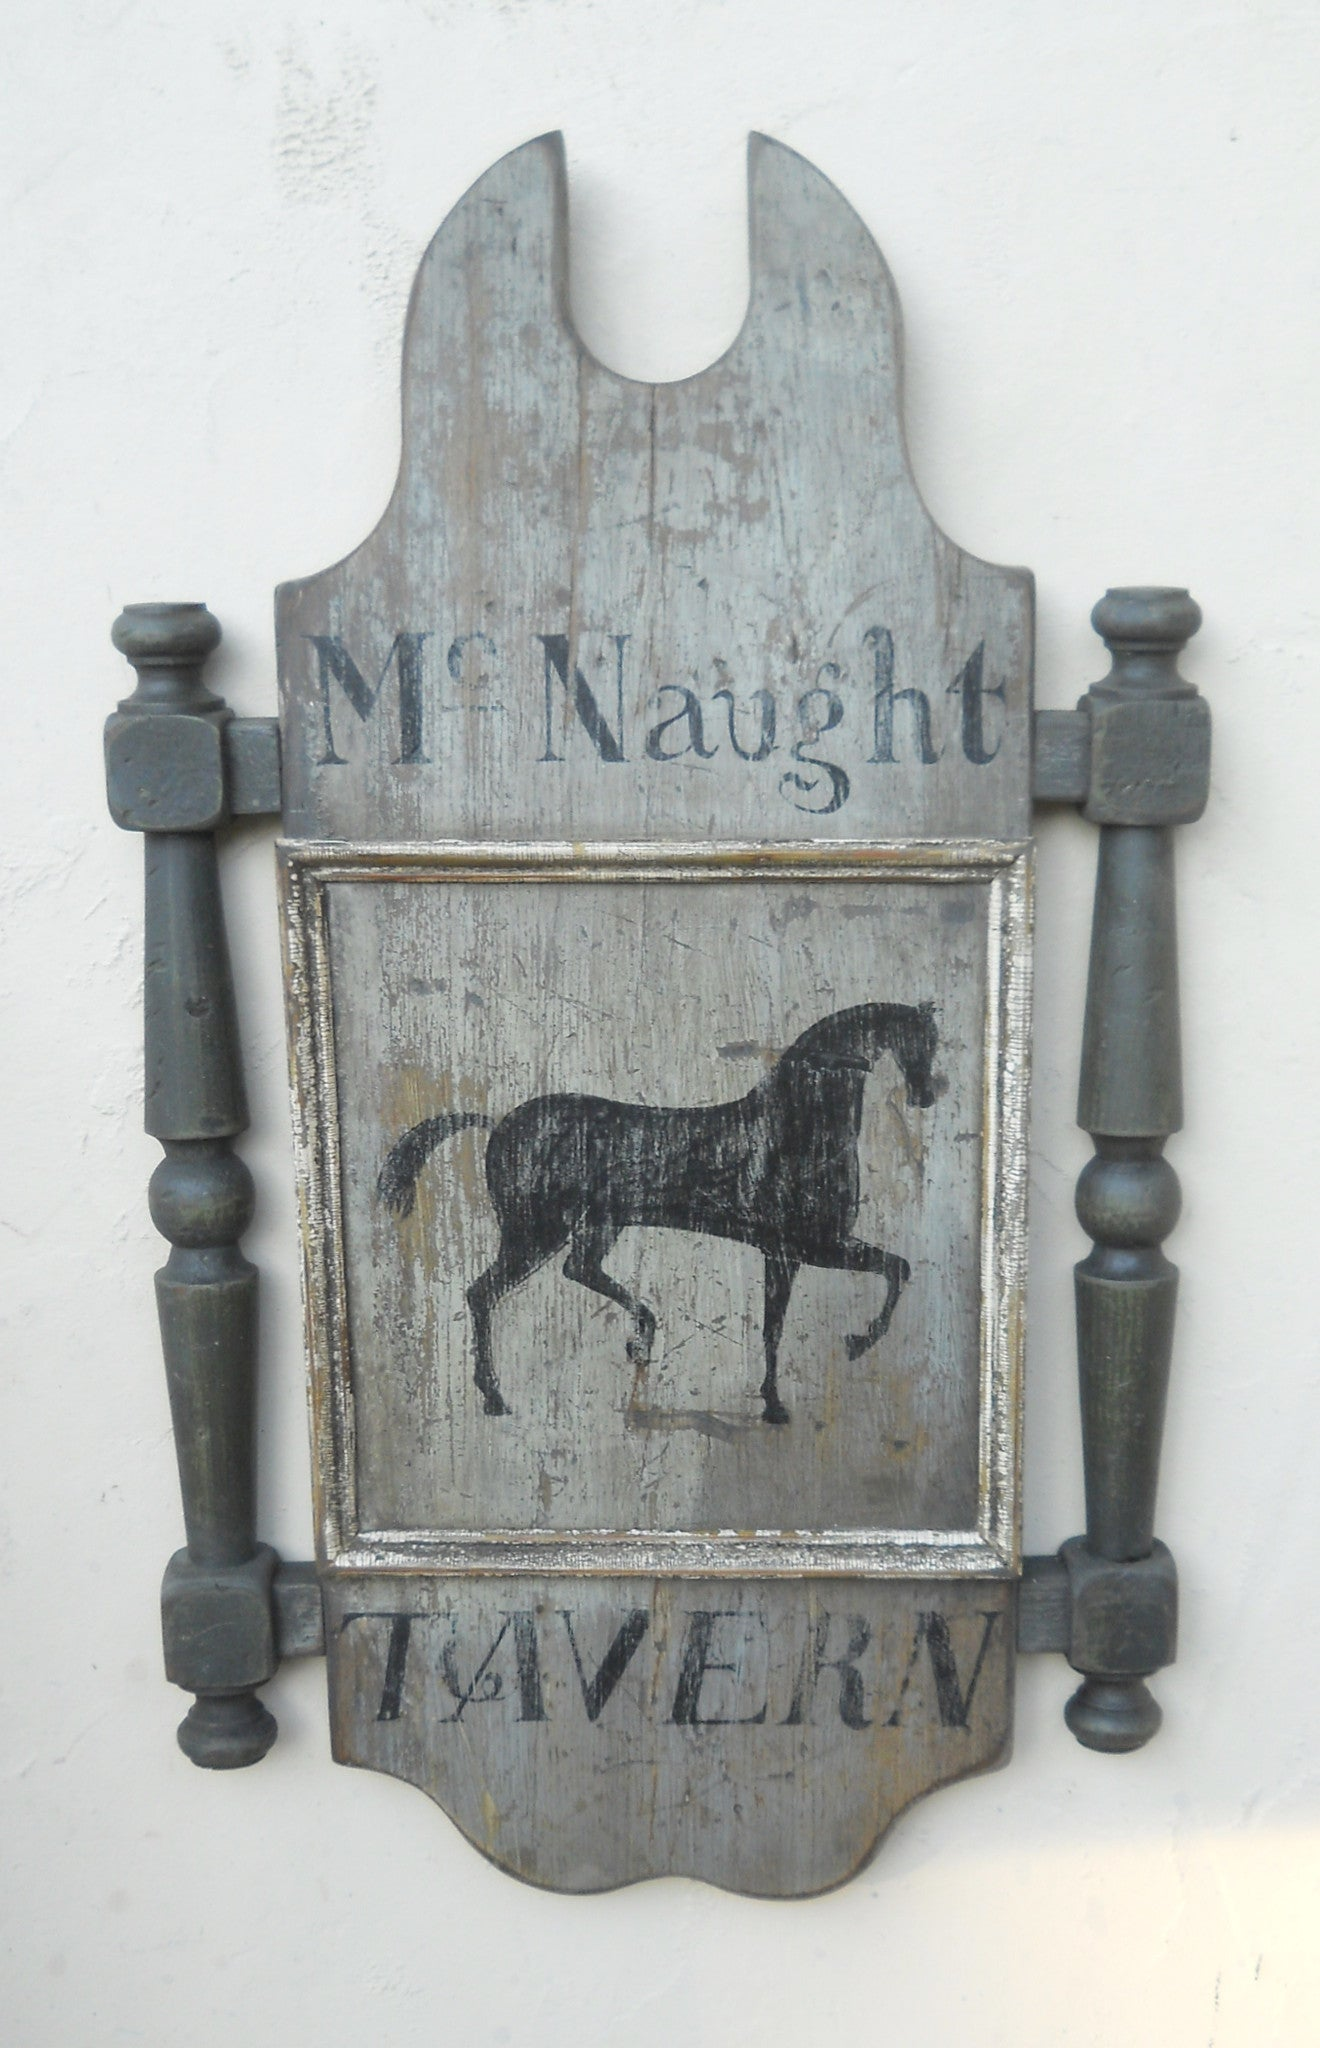 McNaught Tavern